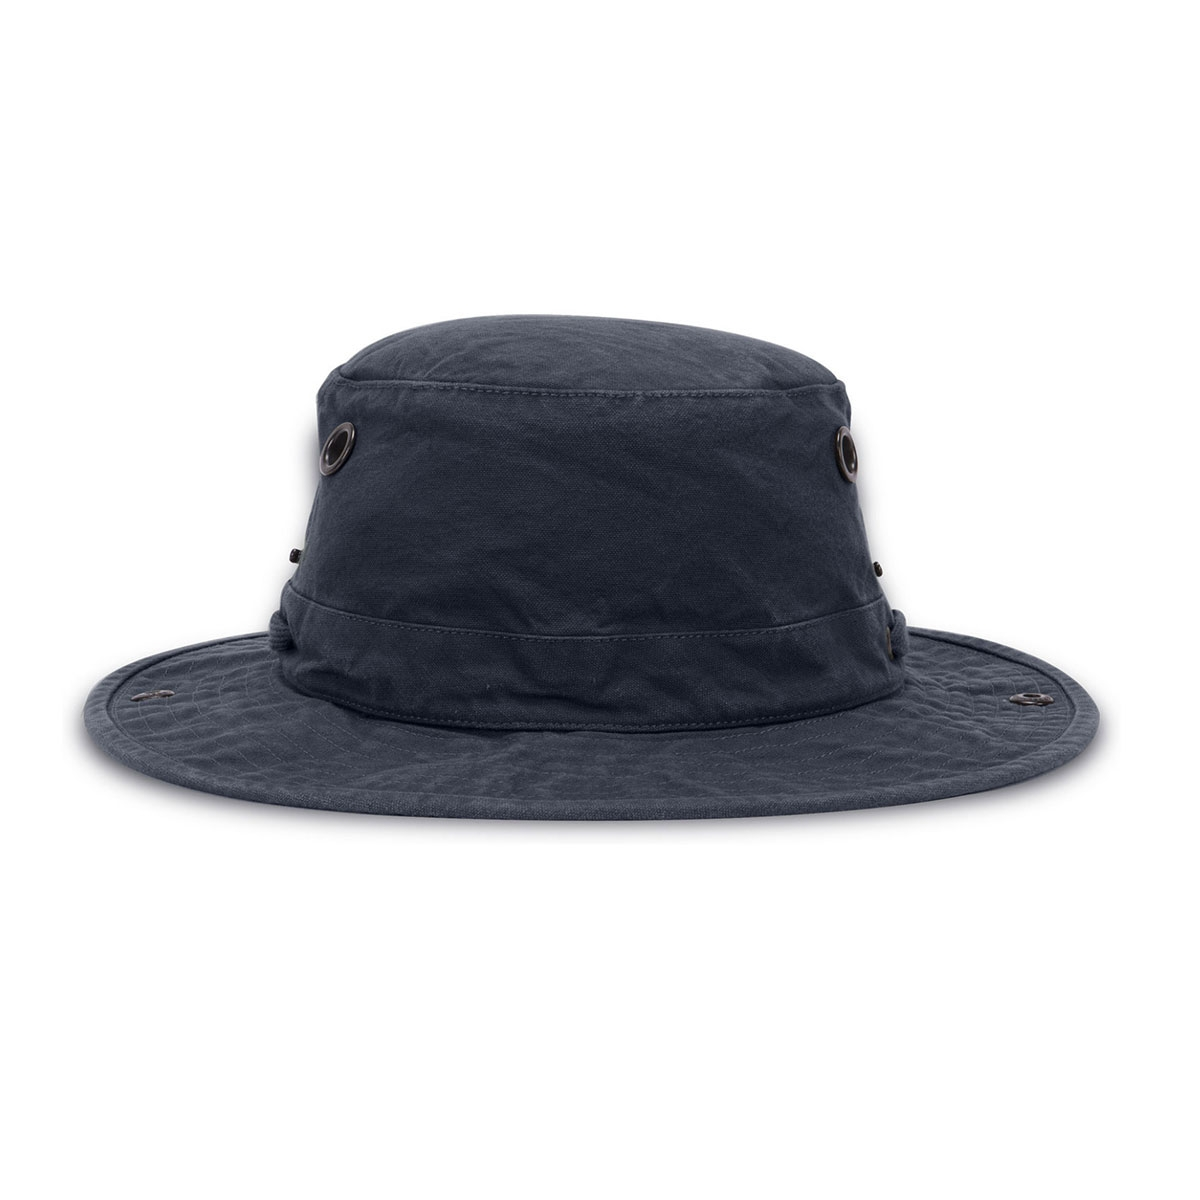 Image of Tilley The Tilley Wanderer Hat - Navy ... fa0d3d89b02